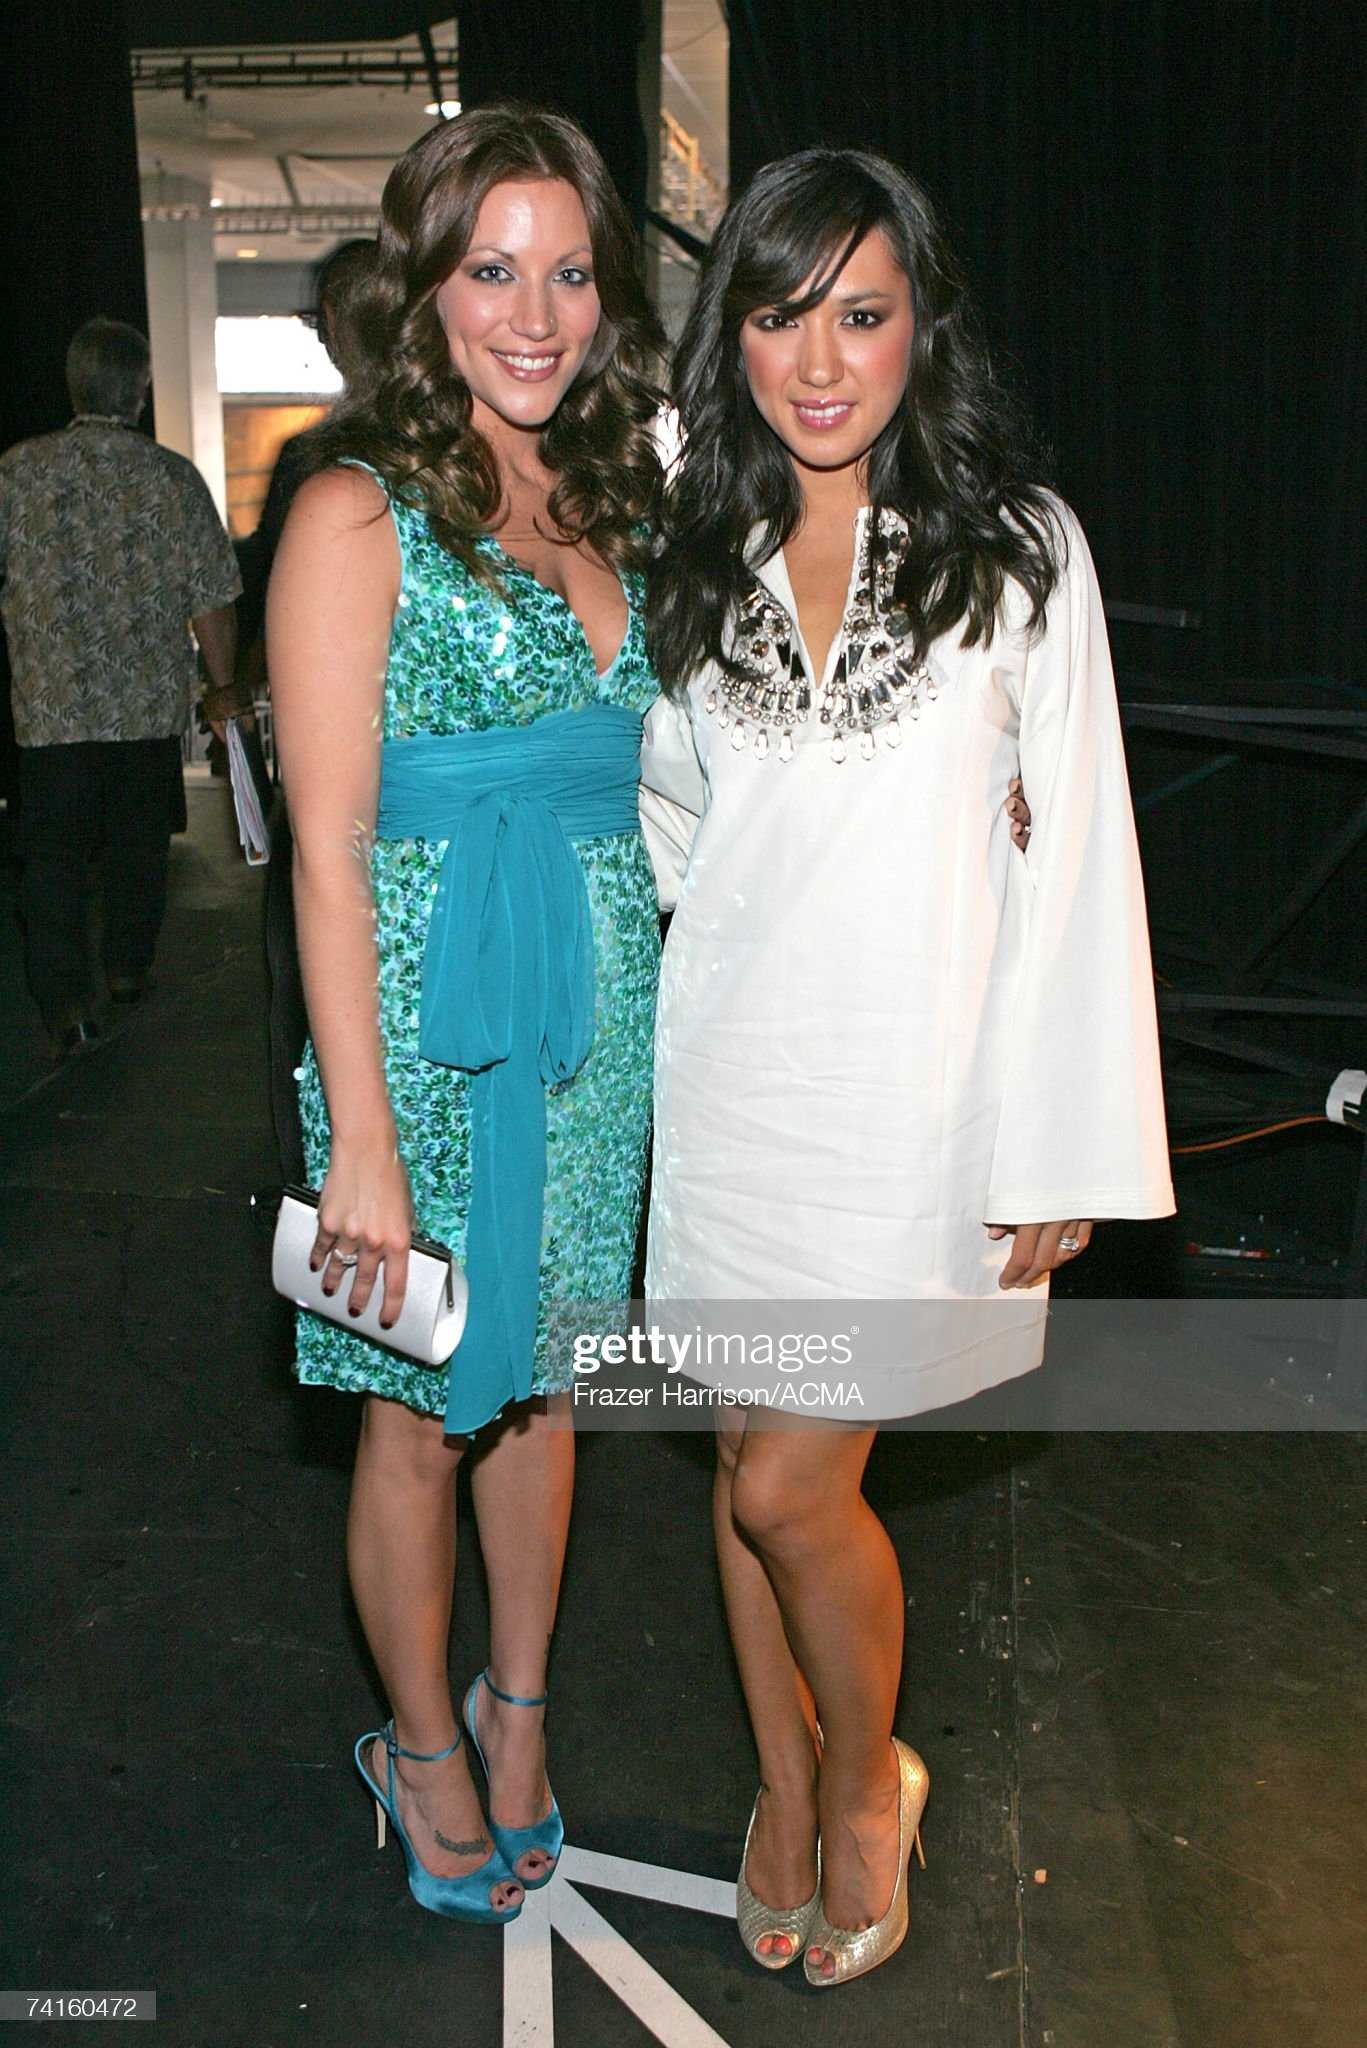 ¿Cuánto mide Michelle Branch? - Altura - Real height Musicians-jessica-harp-and-michelle-branch-of-the-band-the-wreckers-picture-id74160472?s=2048x2048